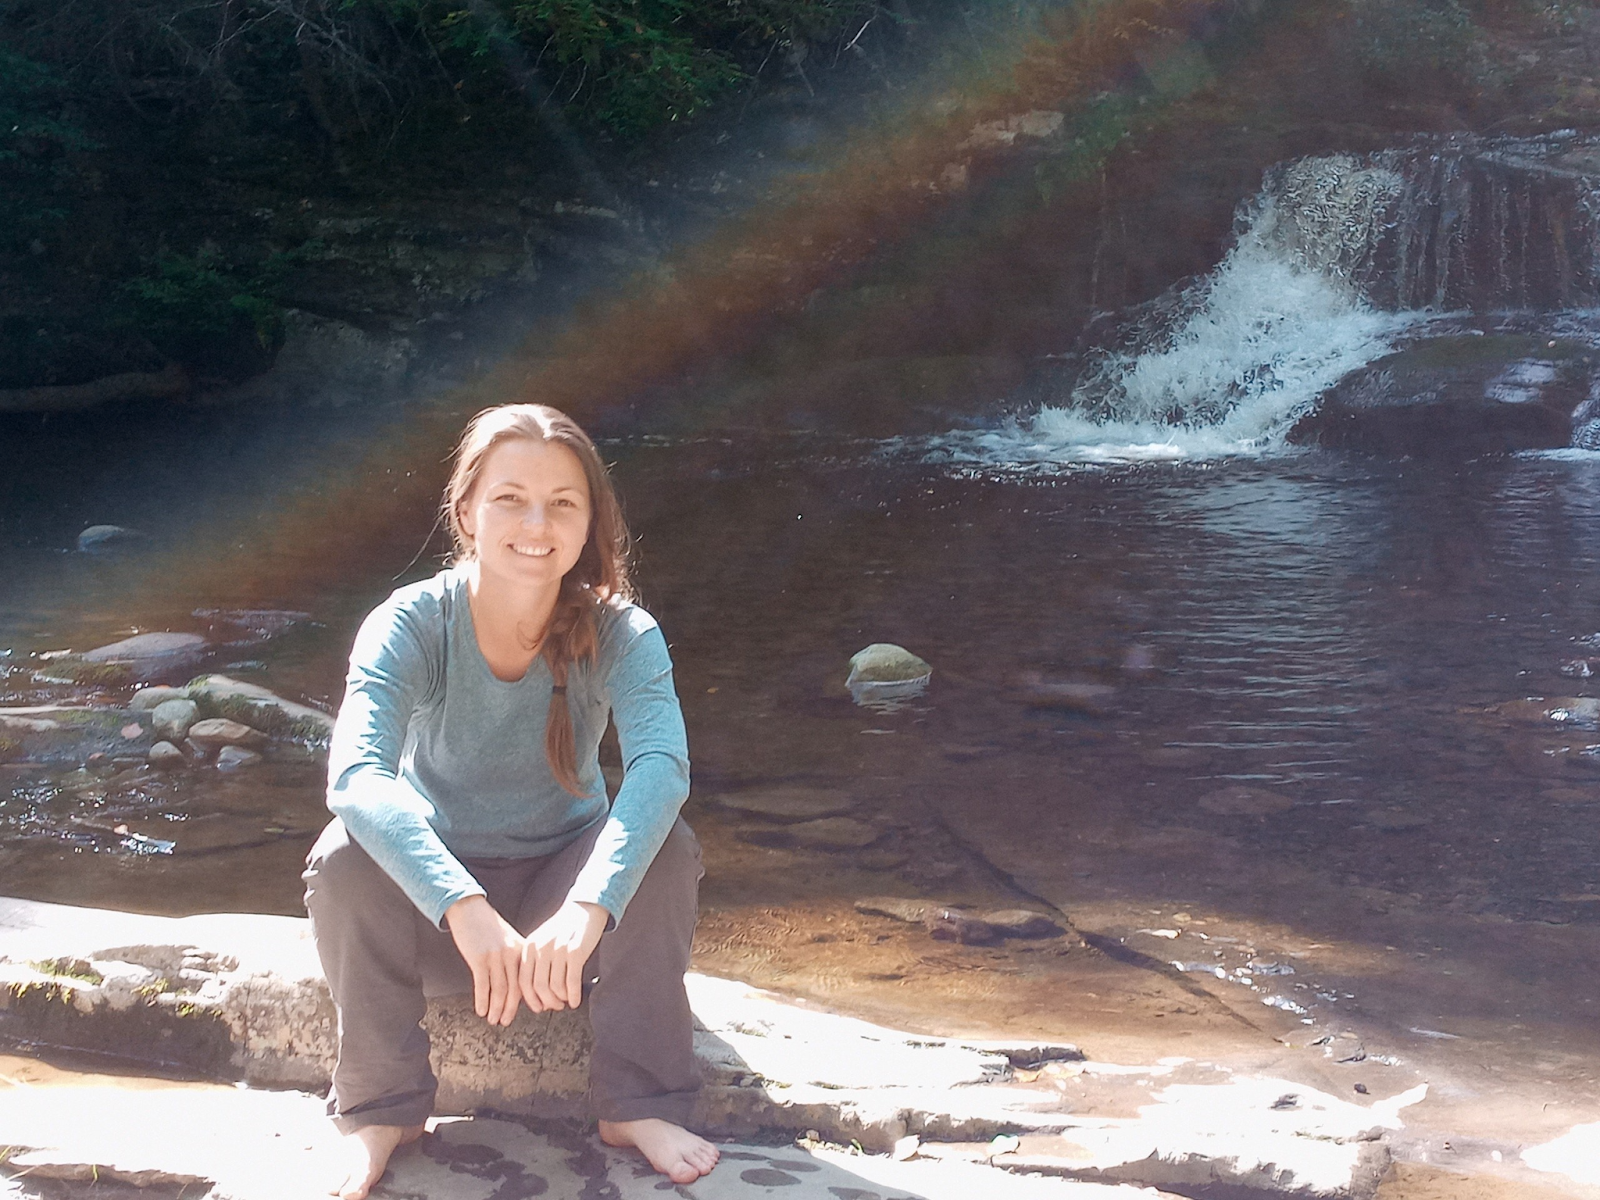 Image of Kate sitting on a rock by a stream